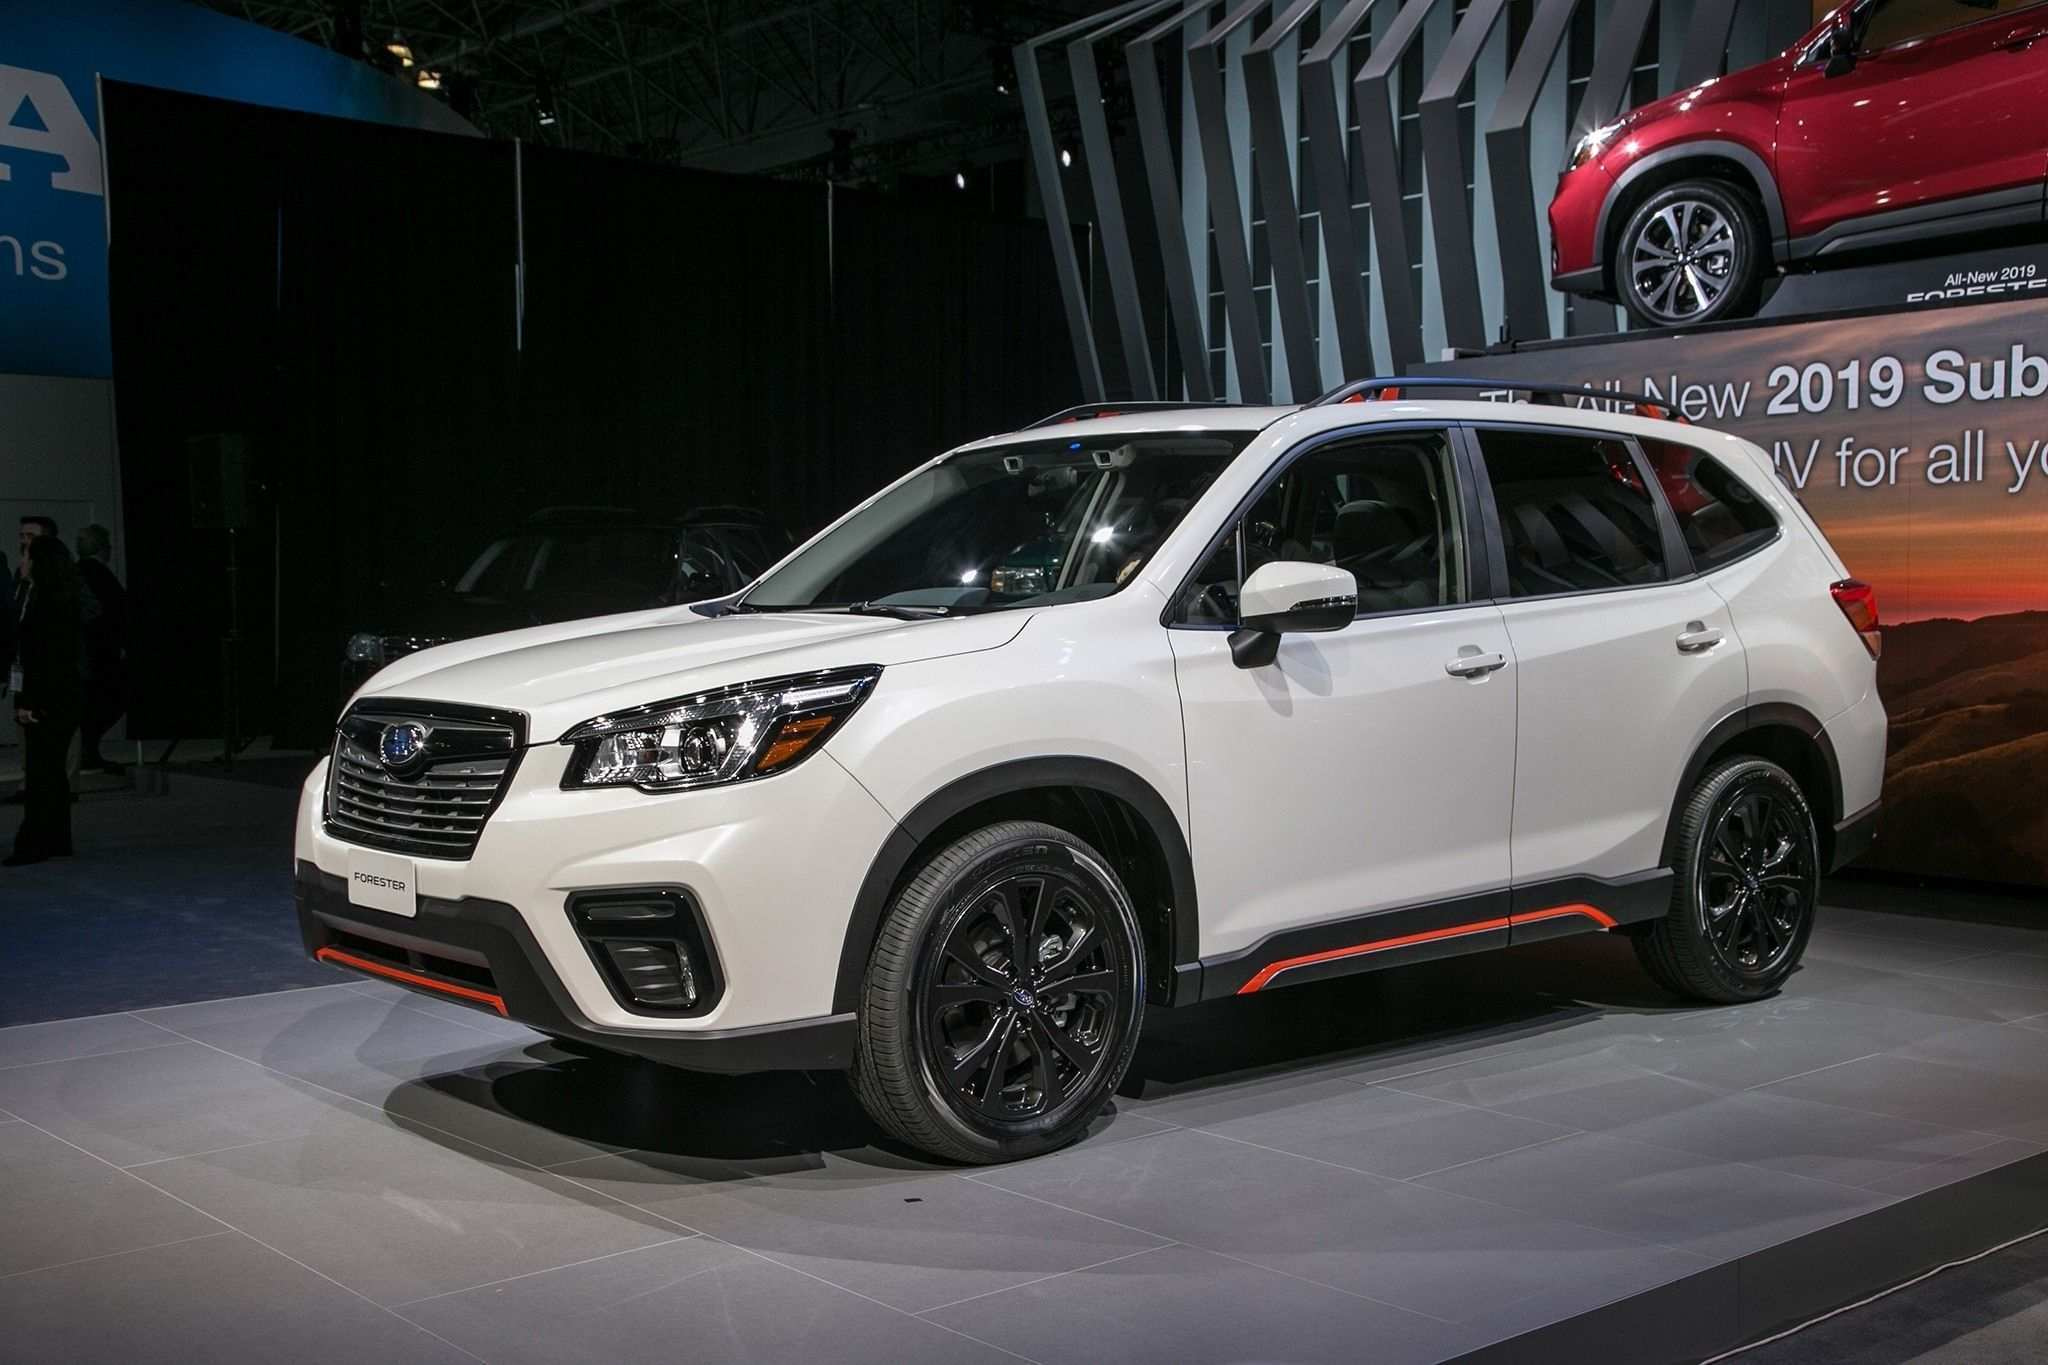 33 Concept of Subaru Baja 2019 Pricing for Subaru Baja 2019